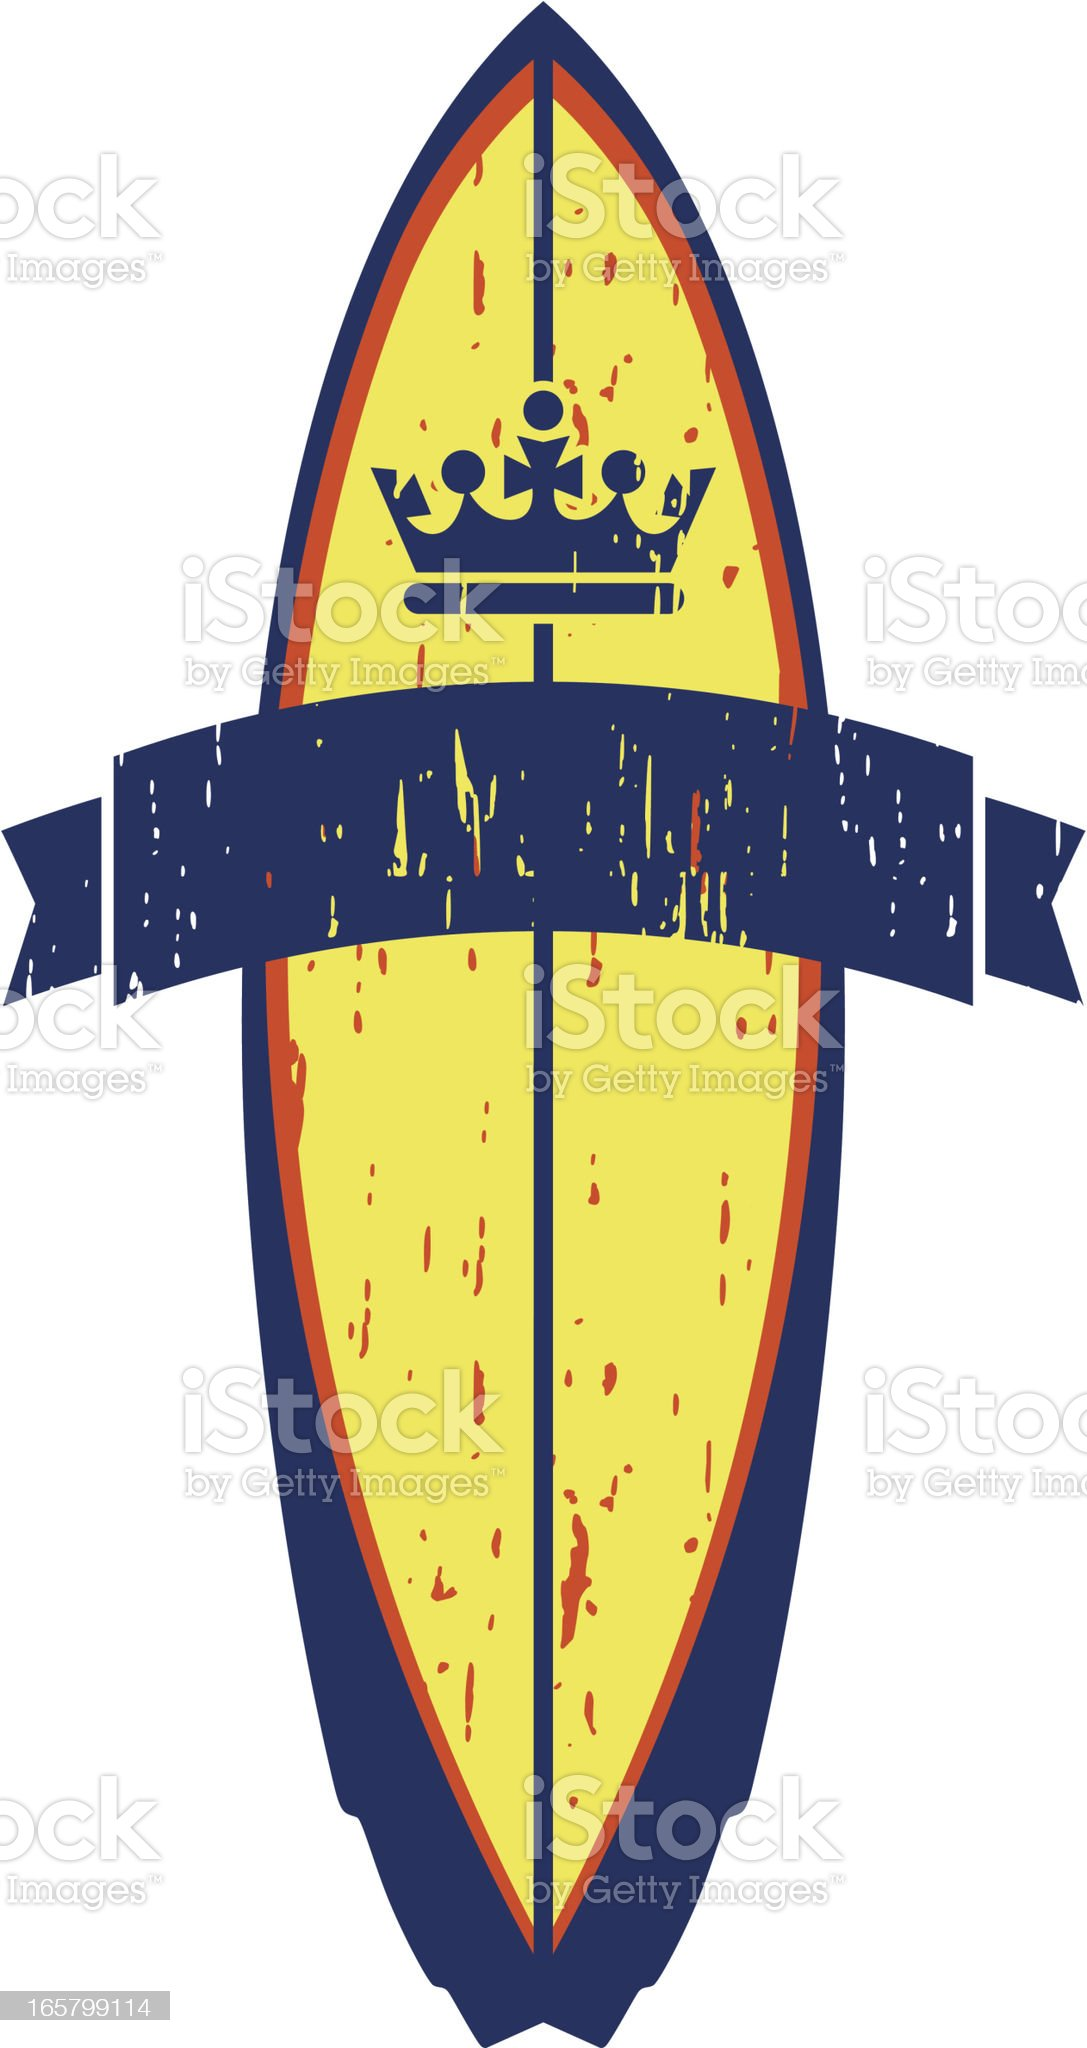 surf competition royalty-free stock vector art